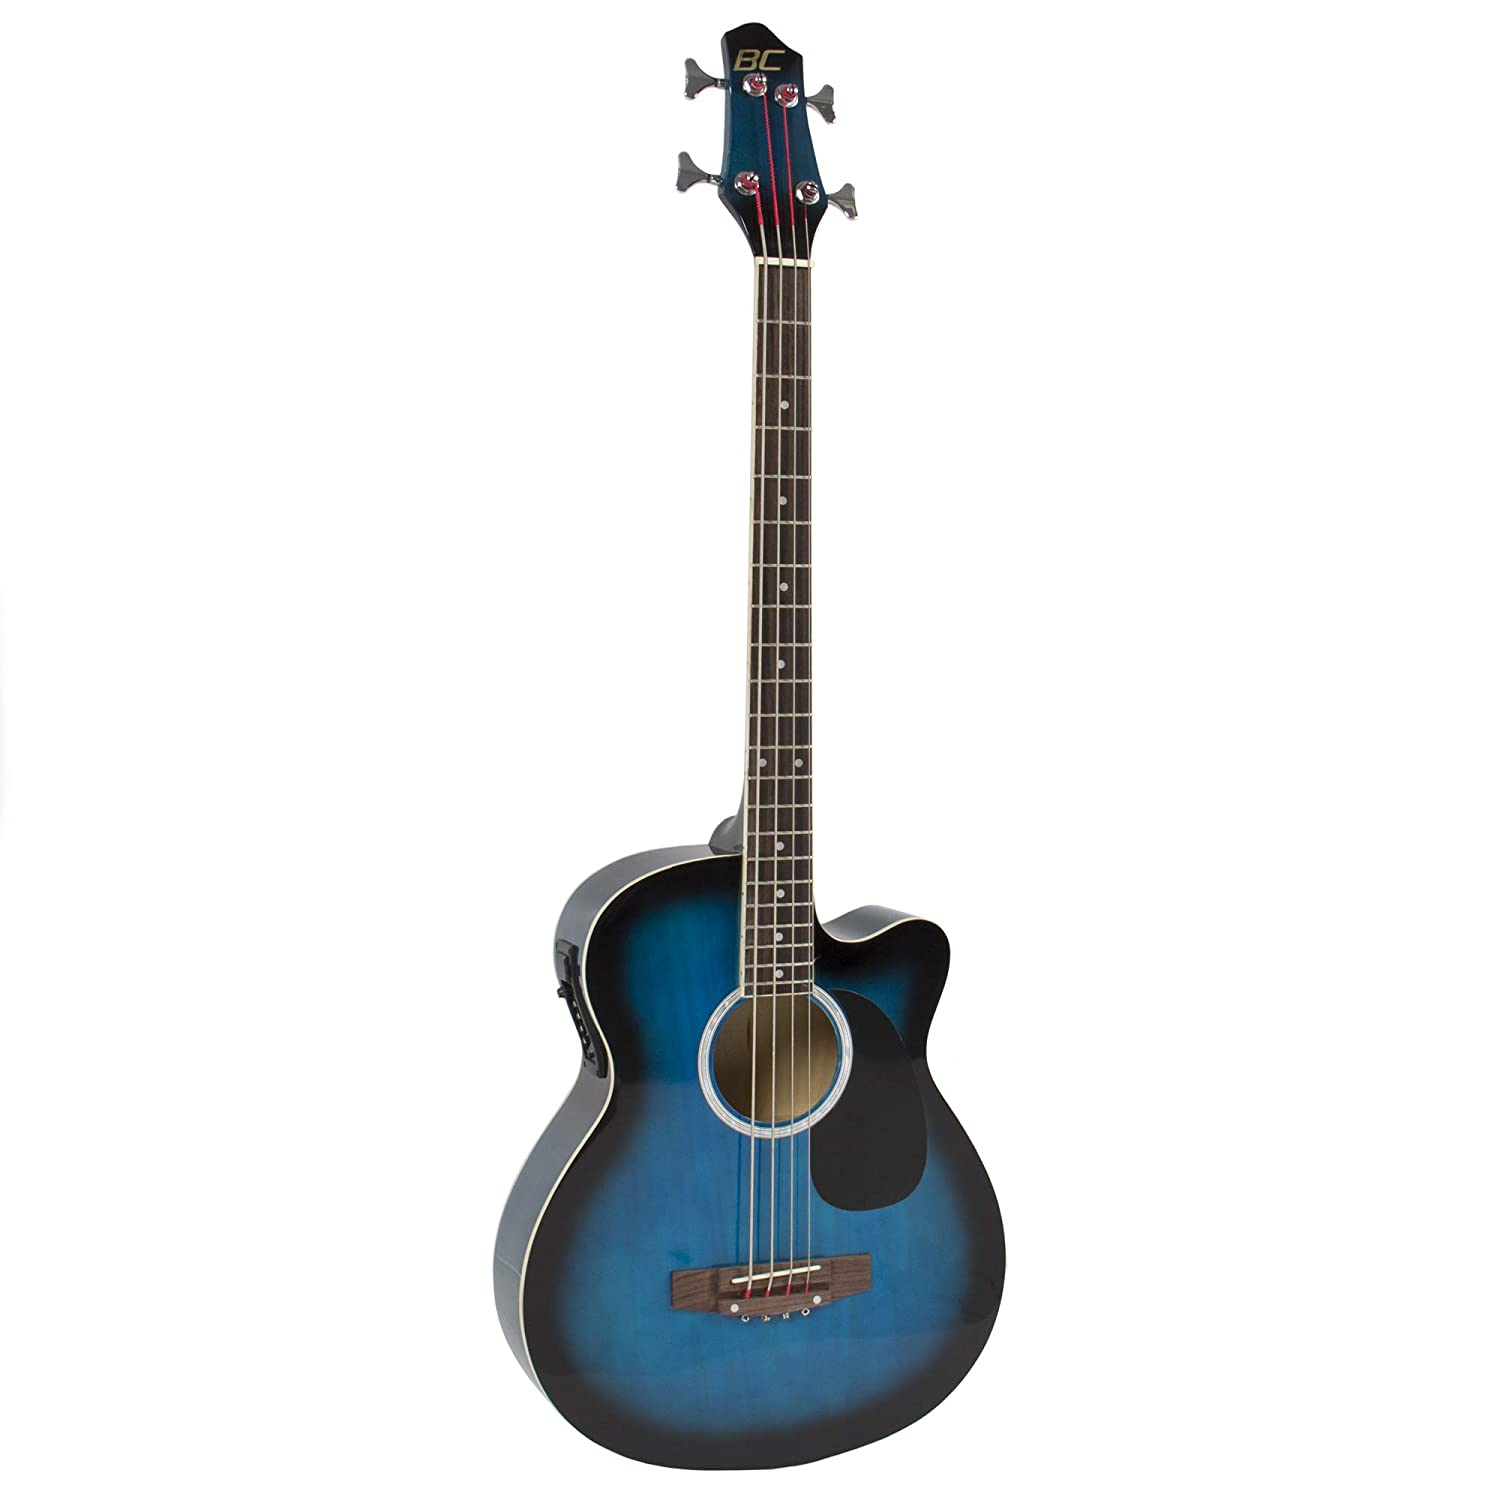 Best Choice Products Acoustic Electric Bass Guitar w/Equalizer and Solid Construction - Black